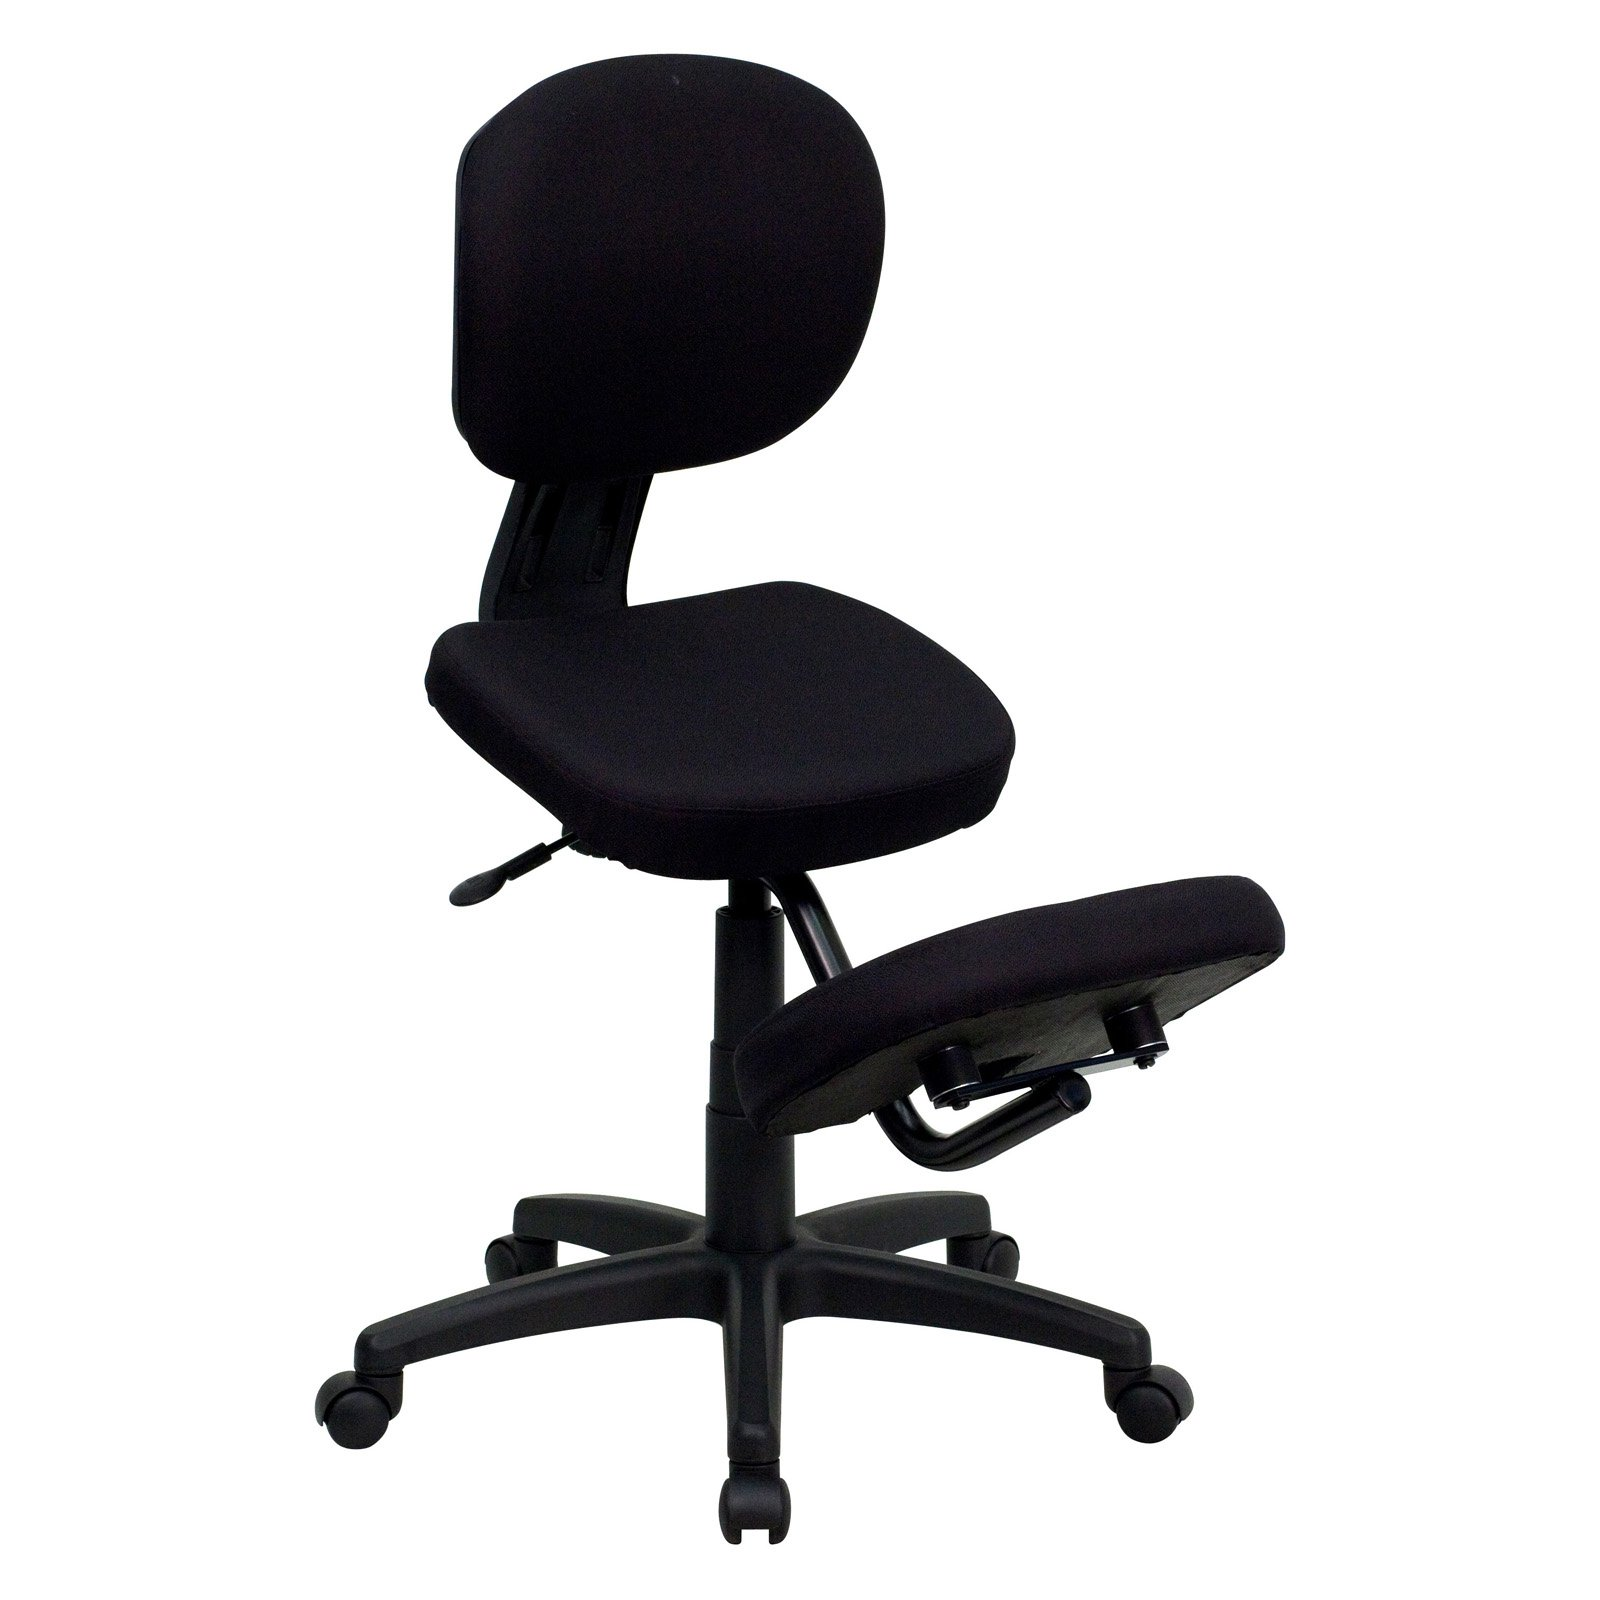 Flash Furniture Ergonomic Kneeling Posture Task Chair with Back - Black Fabric